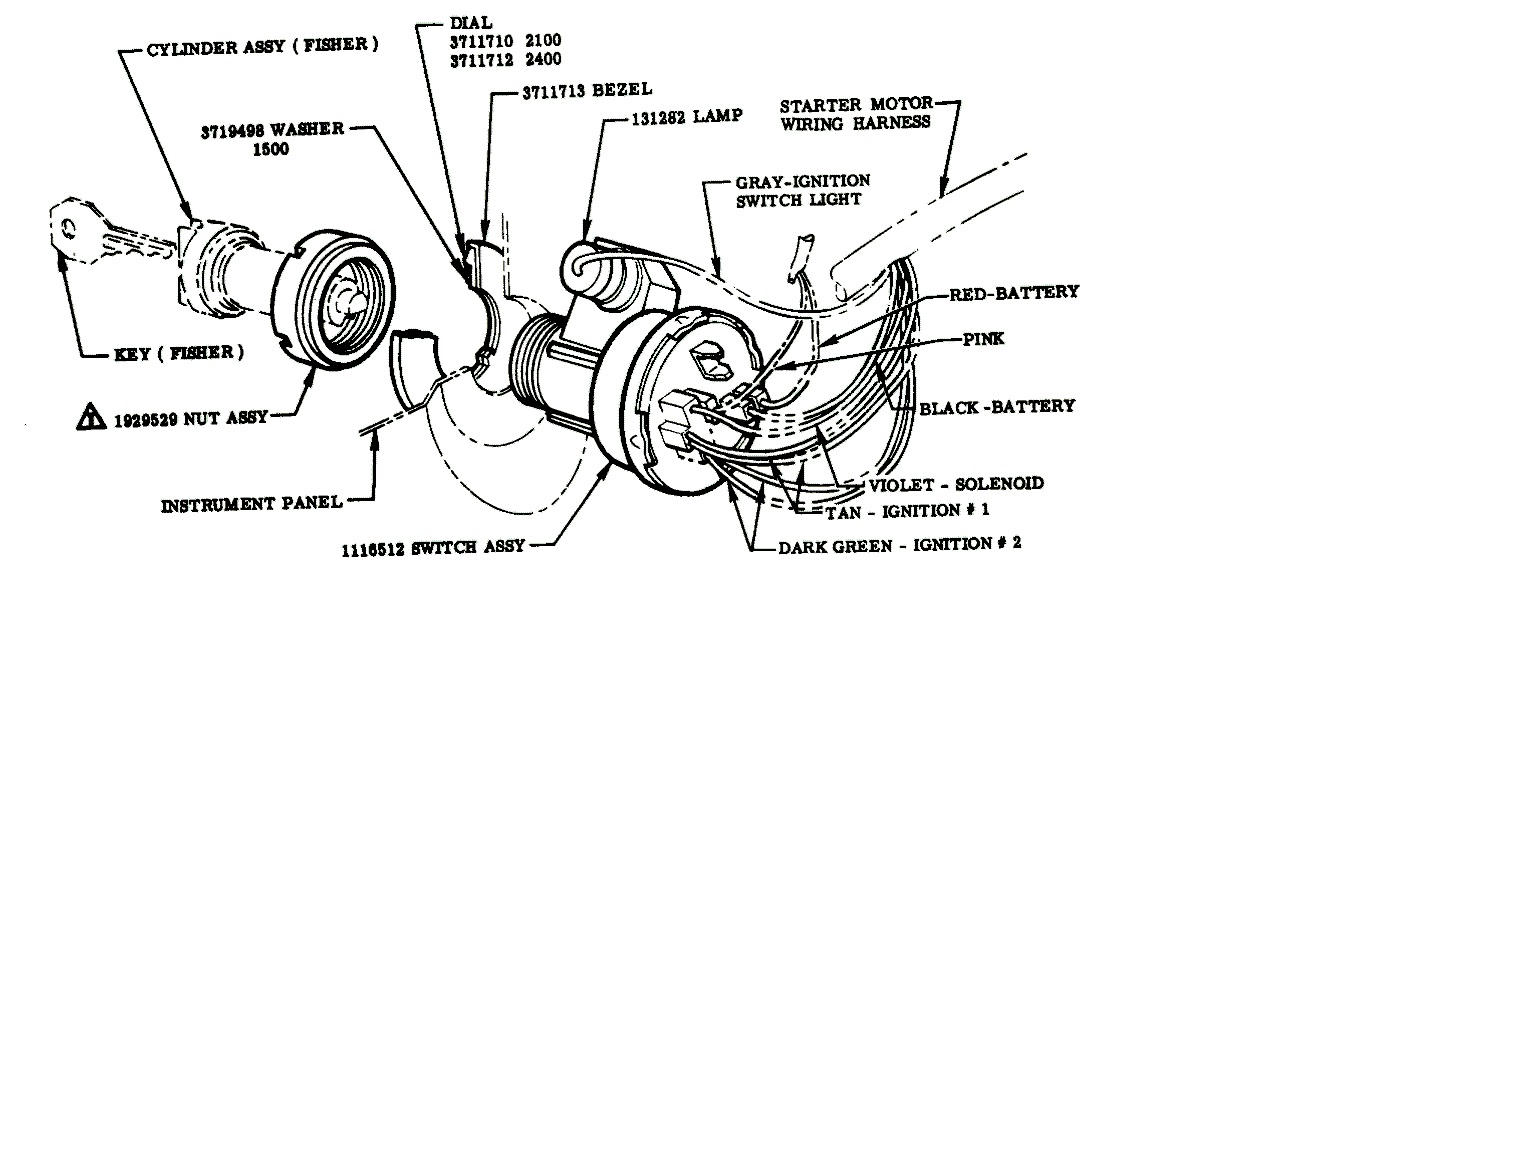 Model A Ford Ignition Wiring Library Distributor Hei Diagram 56 Chev Headlight Dimmer Switch Trusted Rh Dafpods Co 1956 Chevy